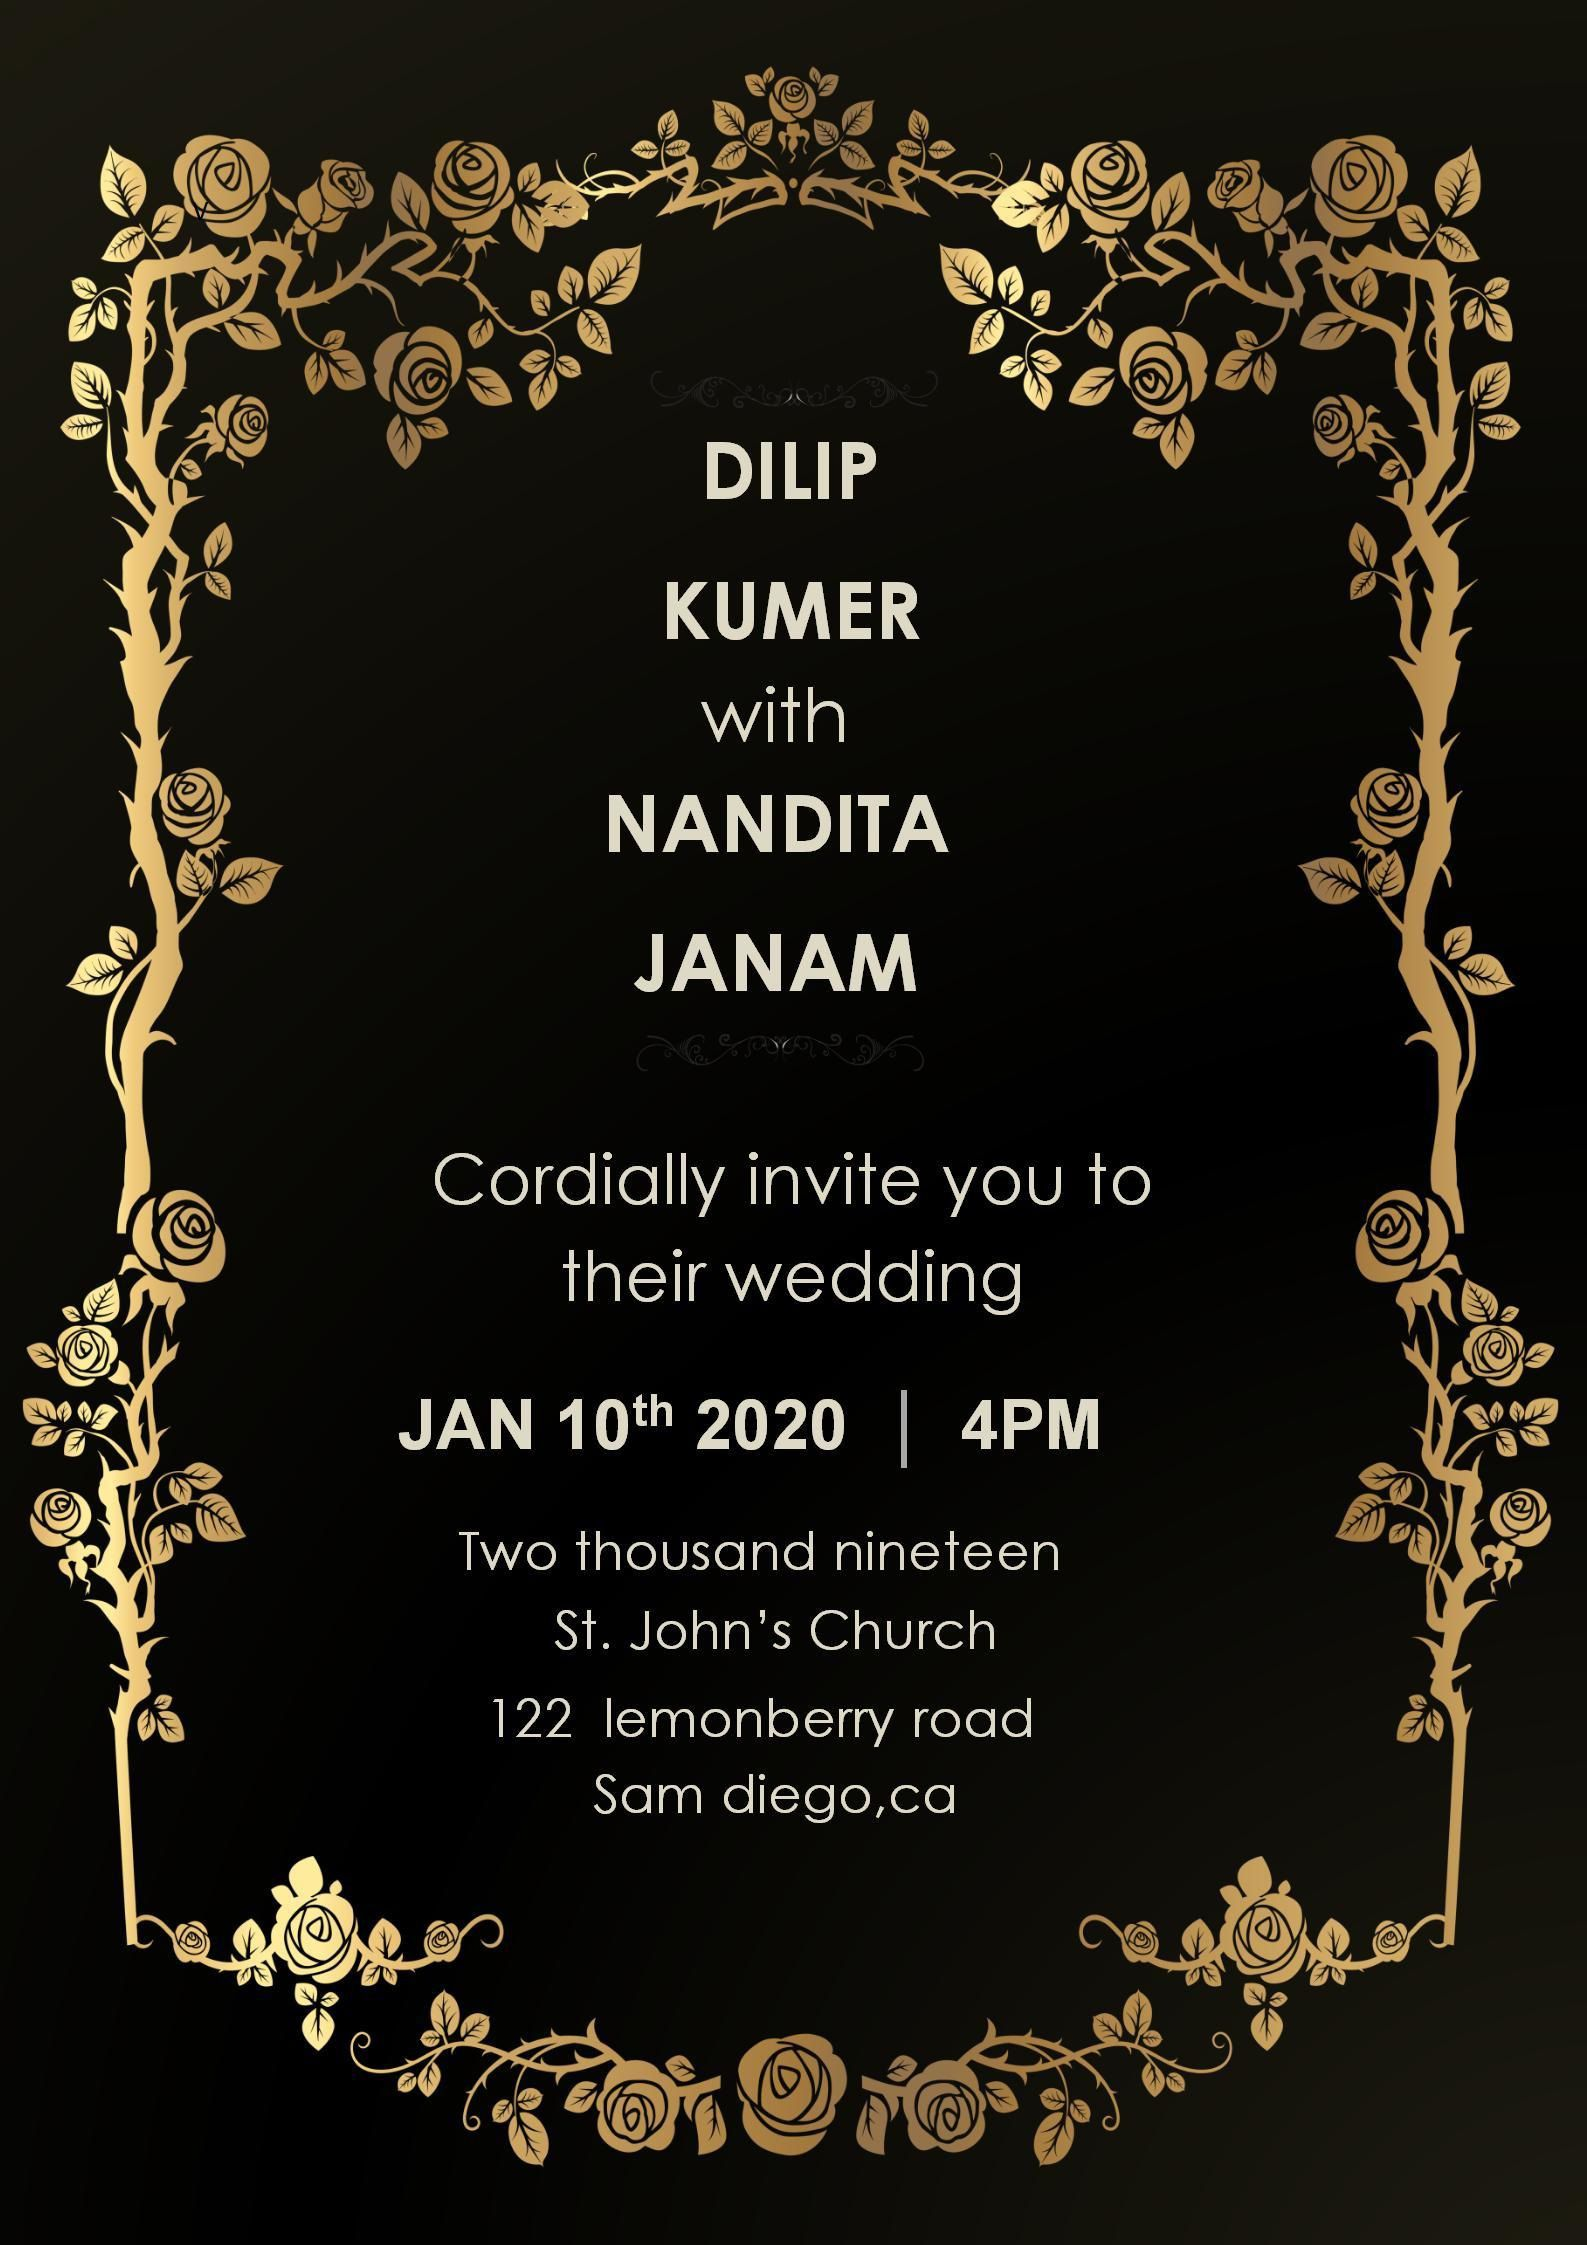 002 Stirring Free Download Invitation Card Template Photo  Templates Indian Wedding Design Software PngFull